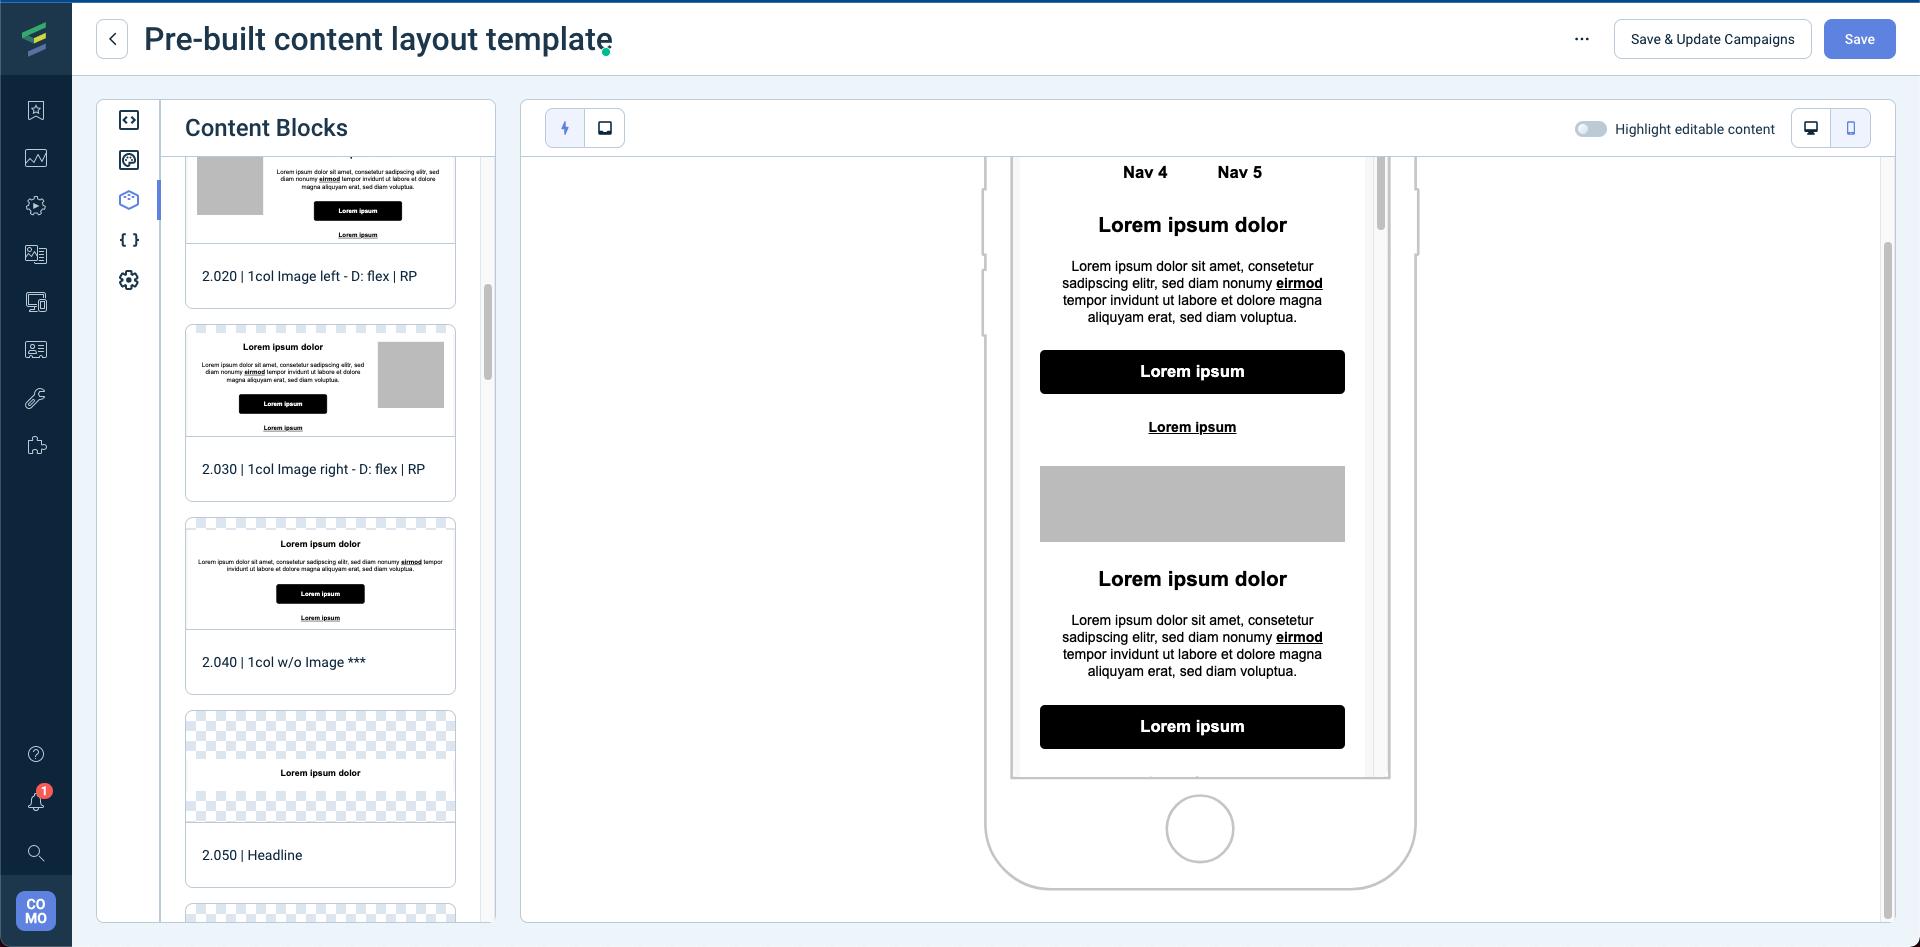 The%20new%20template%20in%20the%20mobile%20preview%20of%20the%20editor